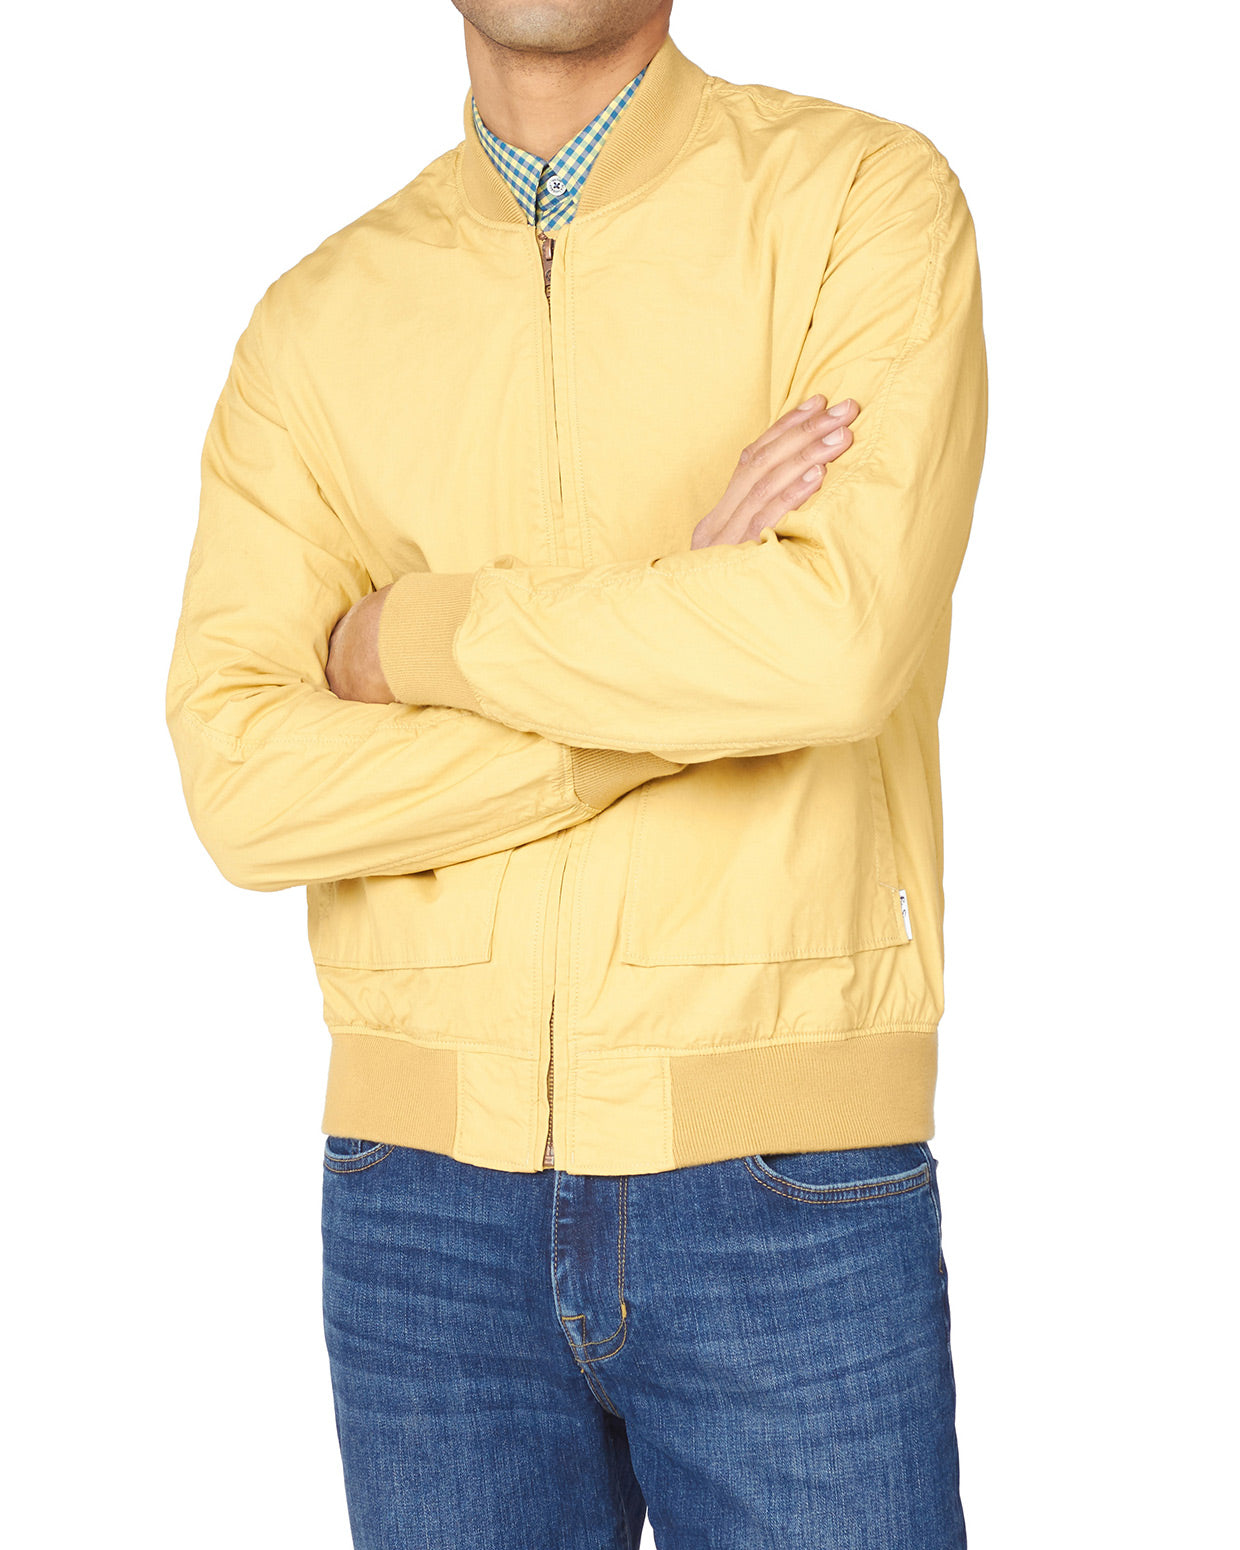 Laundered Bomber Jacket - Pale Yellow